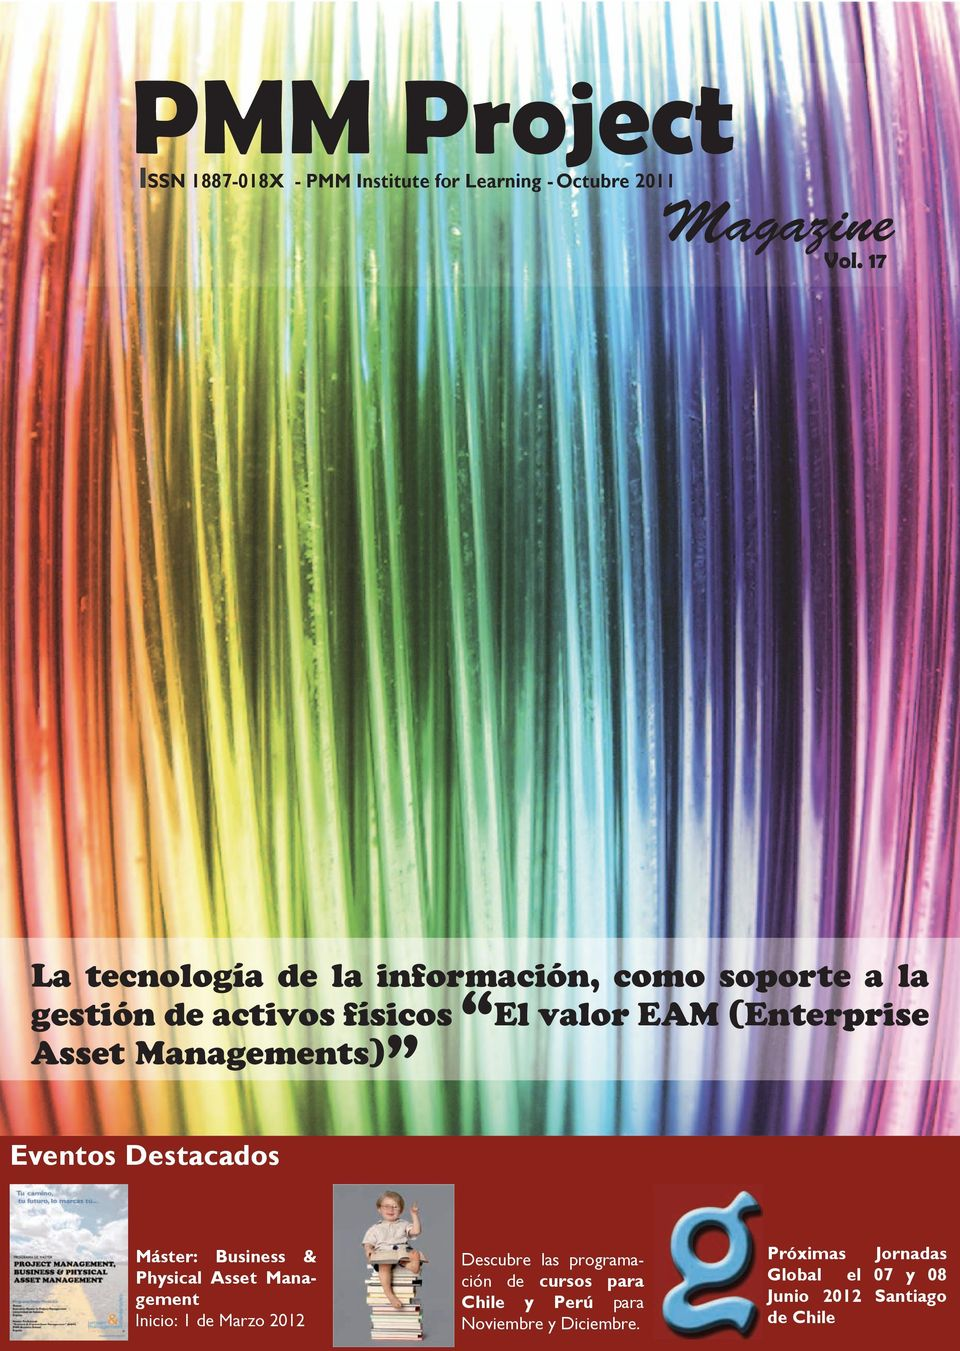 (Enterprise Asset Managements) Eventos Destacados Máster: Business & Physical Asset Management